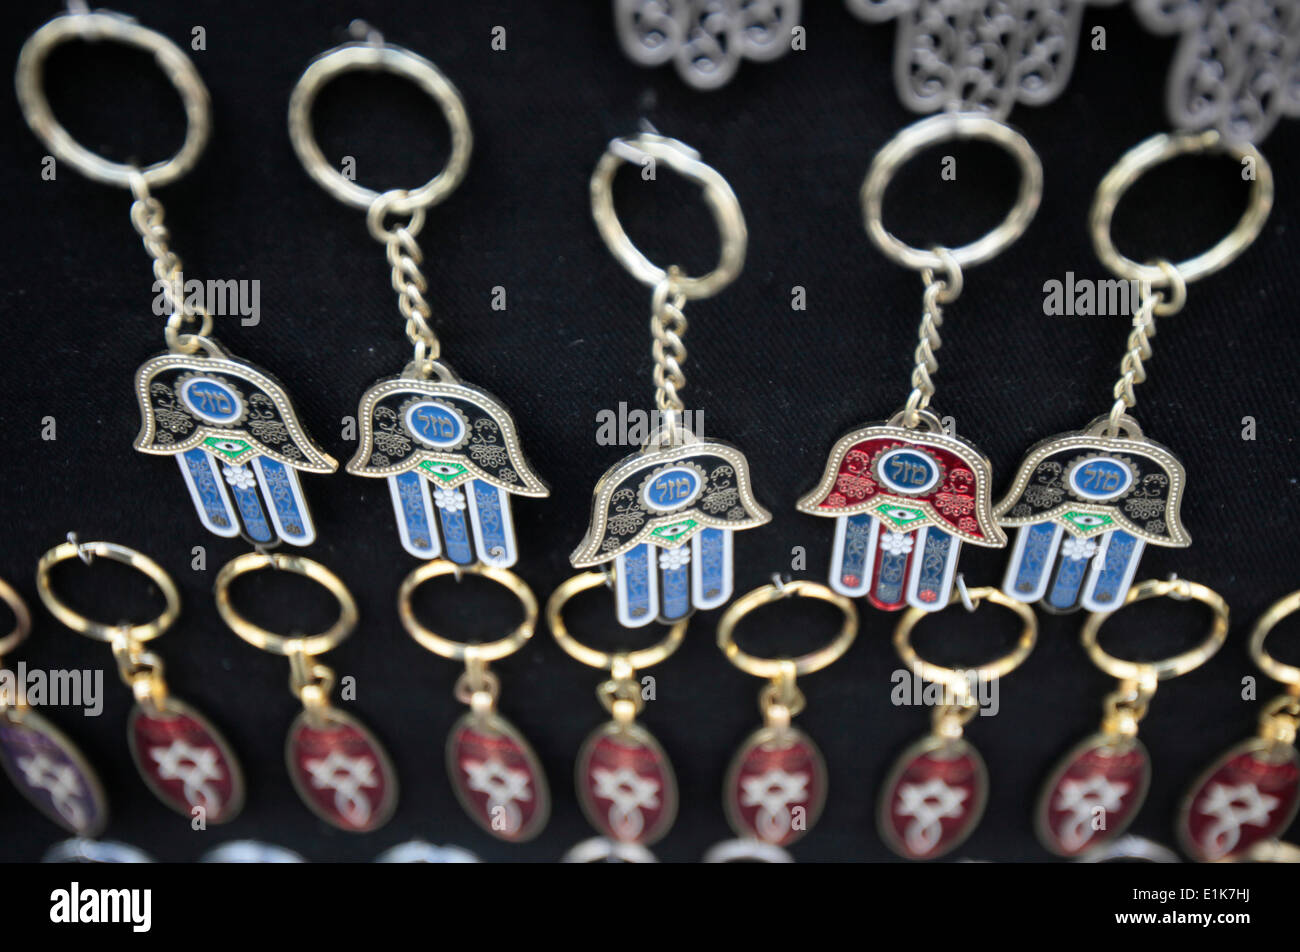 The hamesh hand or hamsa hand is a popular motif in Jewish jewelry. - Stock Image